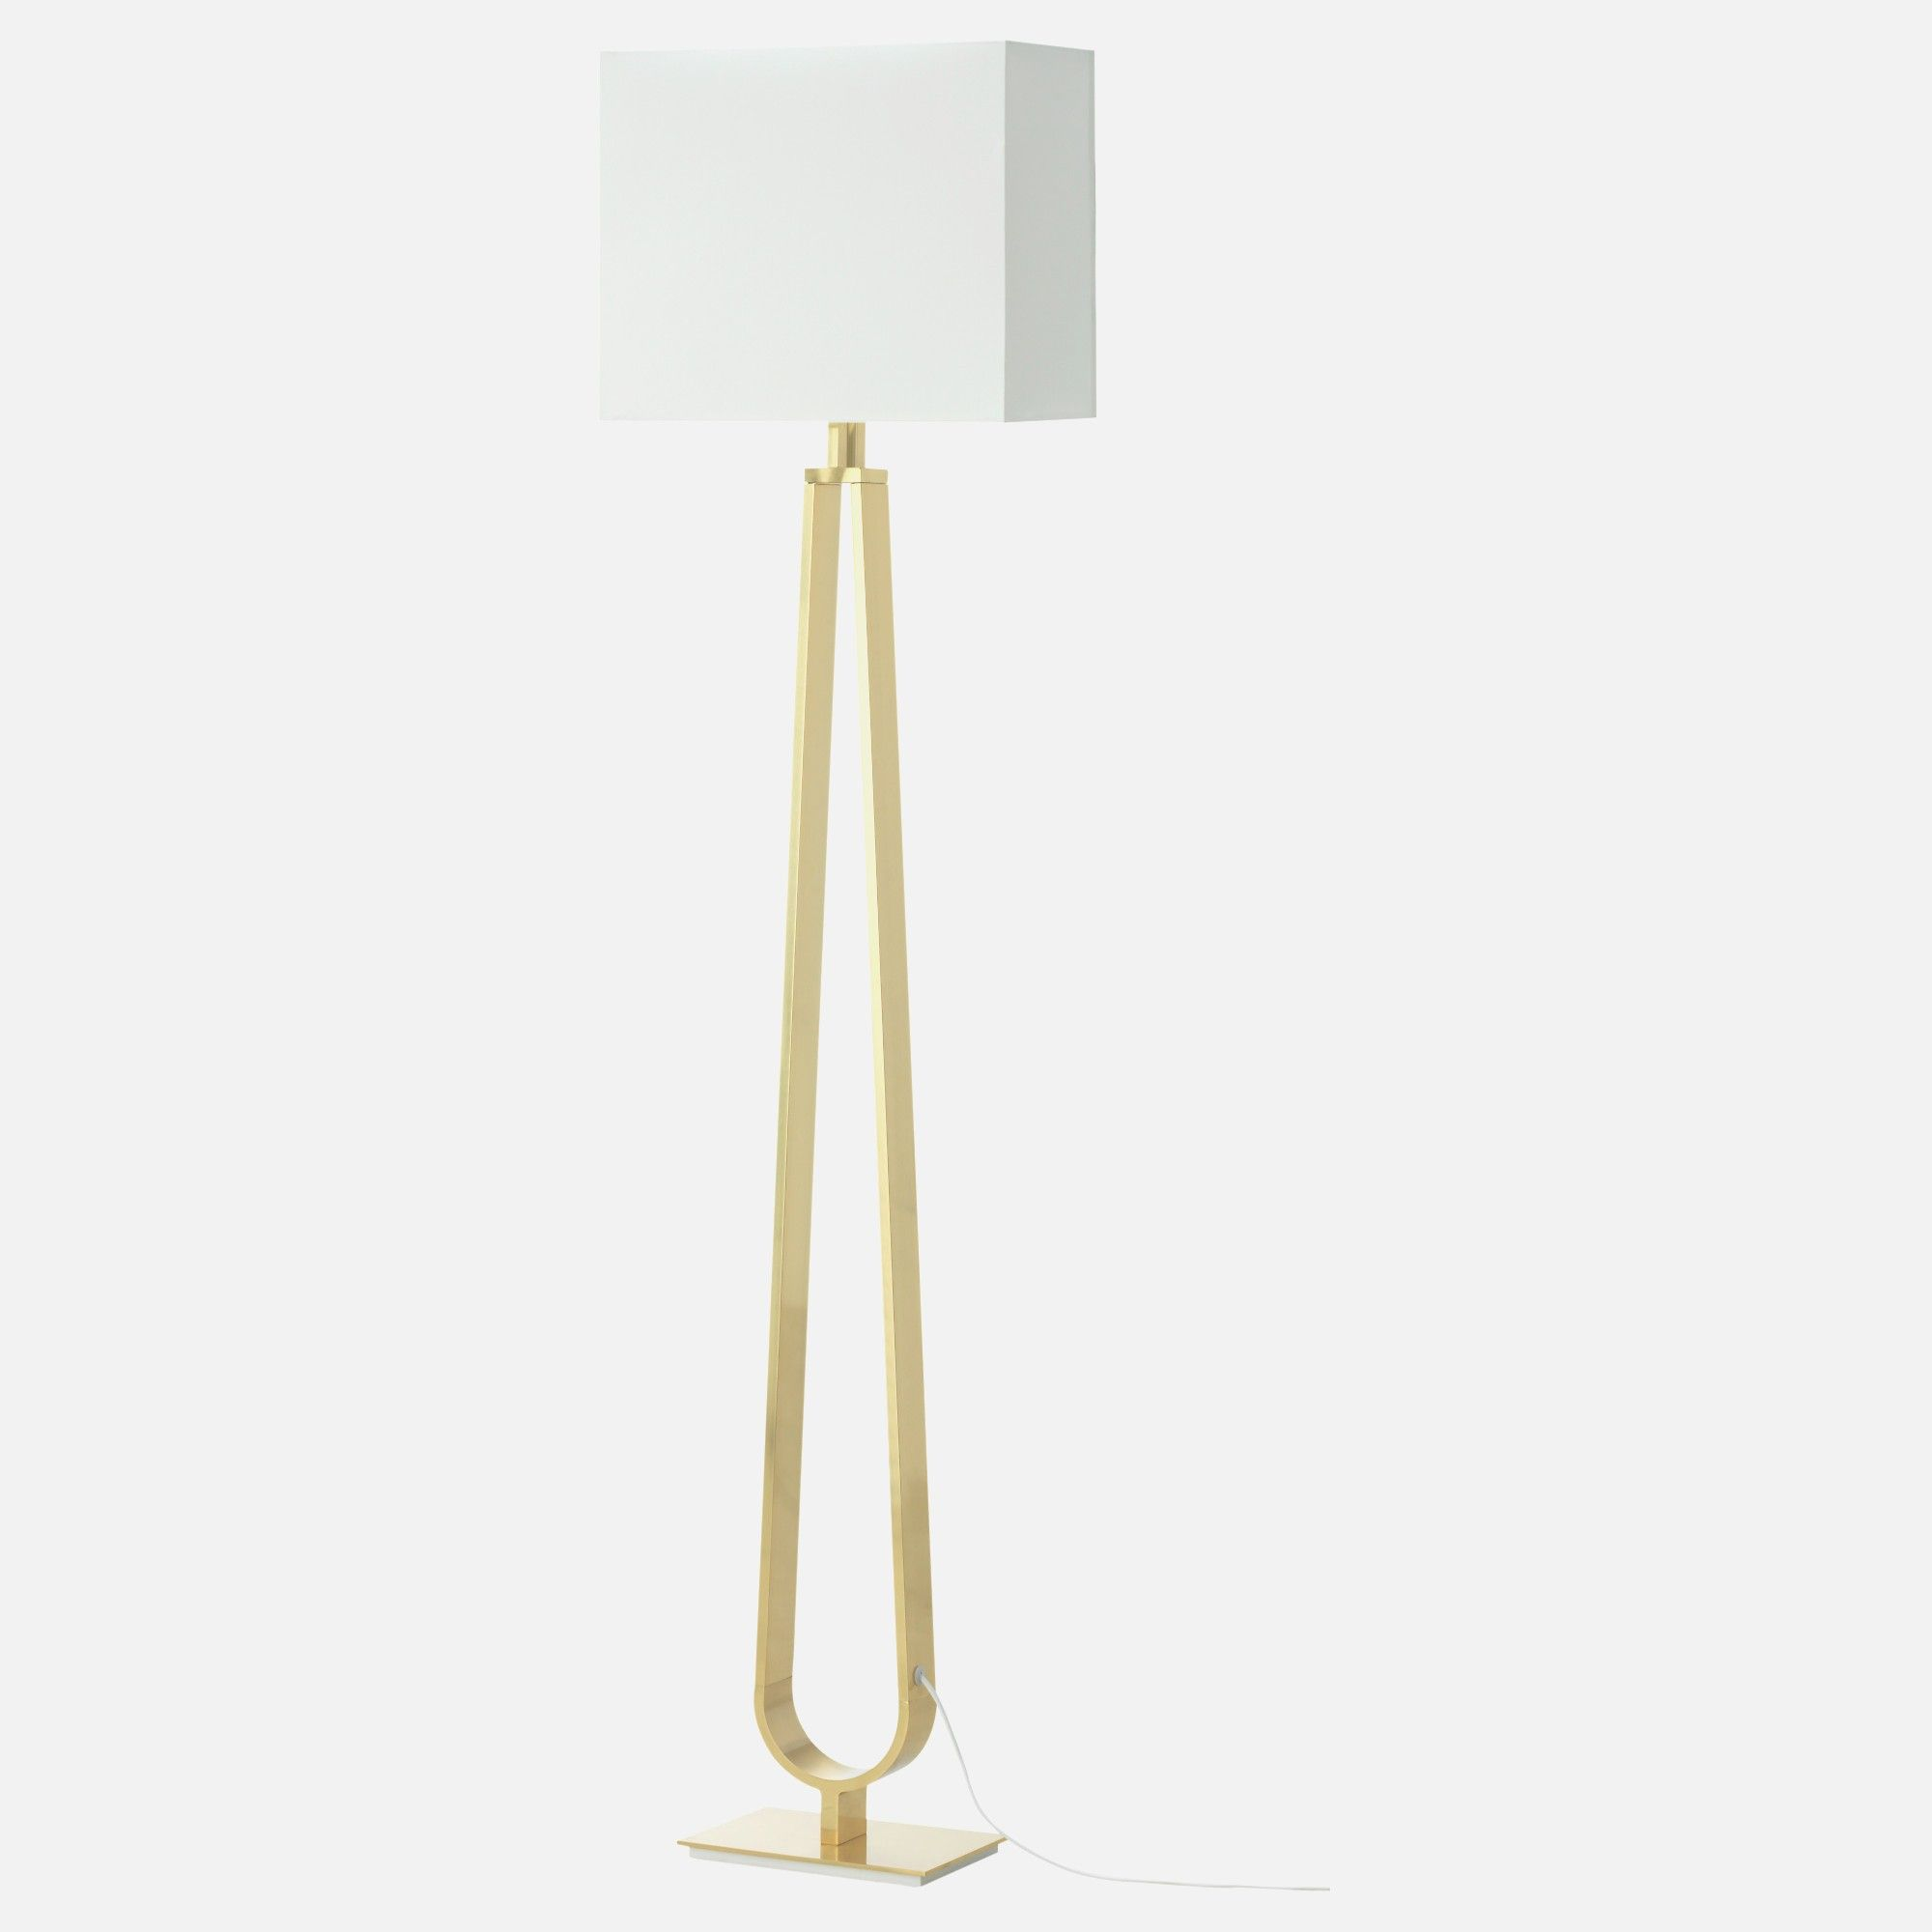 Standing Lamps for Living Room - floor standing lamps for living ...